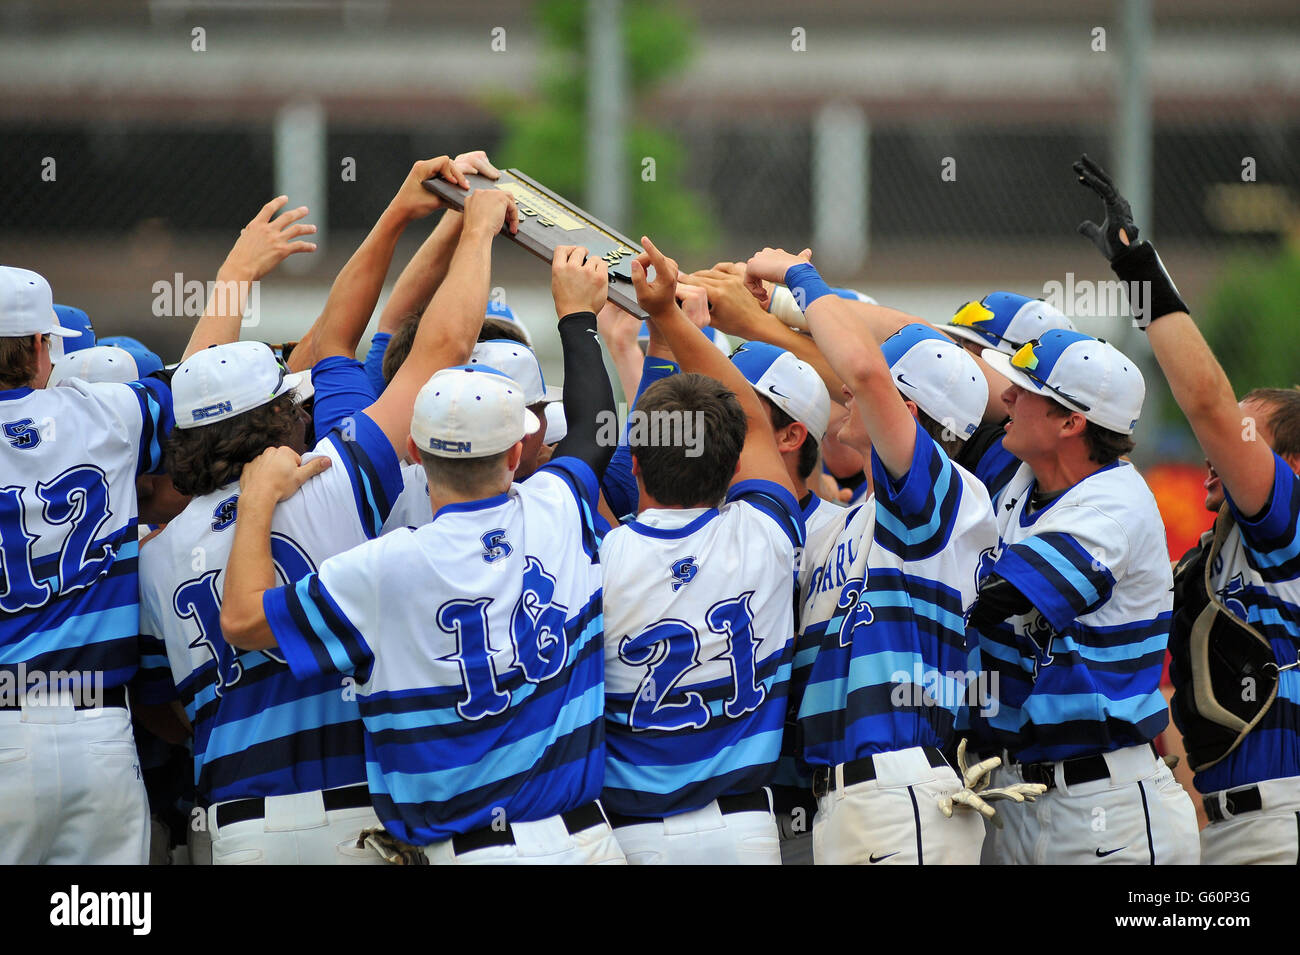 Players rally around a sectional championship plaque they has just won with an on-field victory. USA. - Stock Image